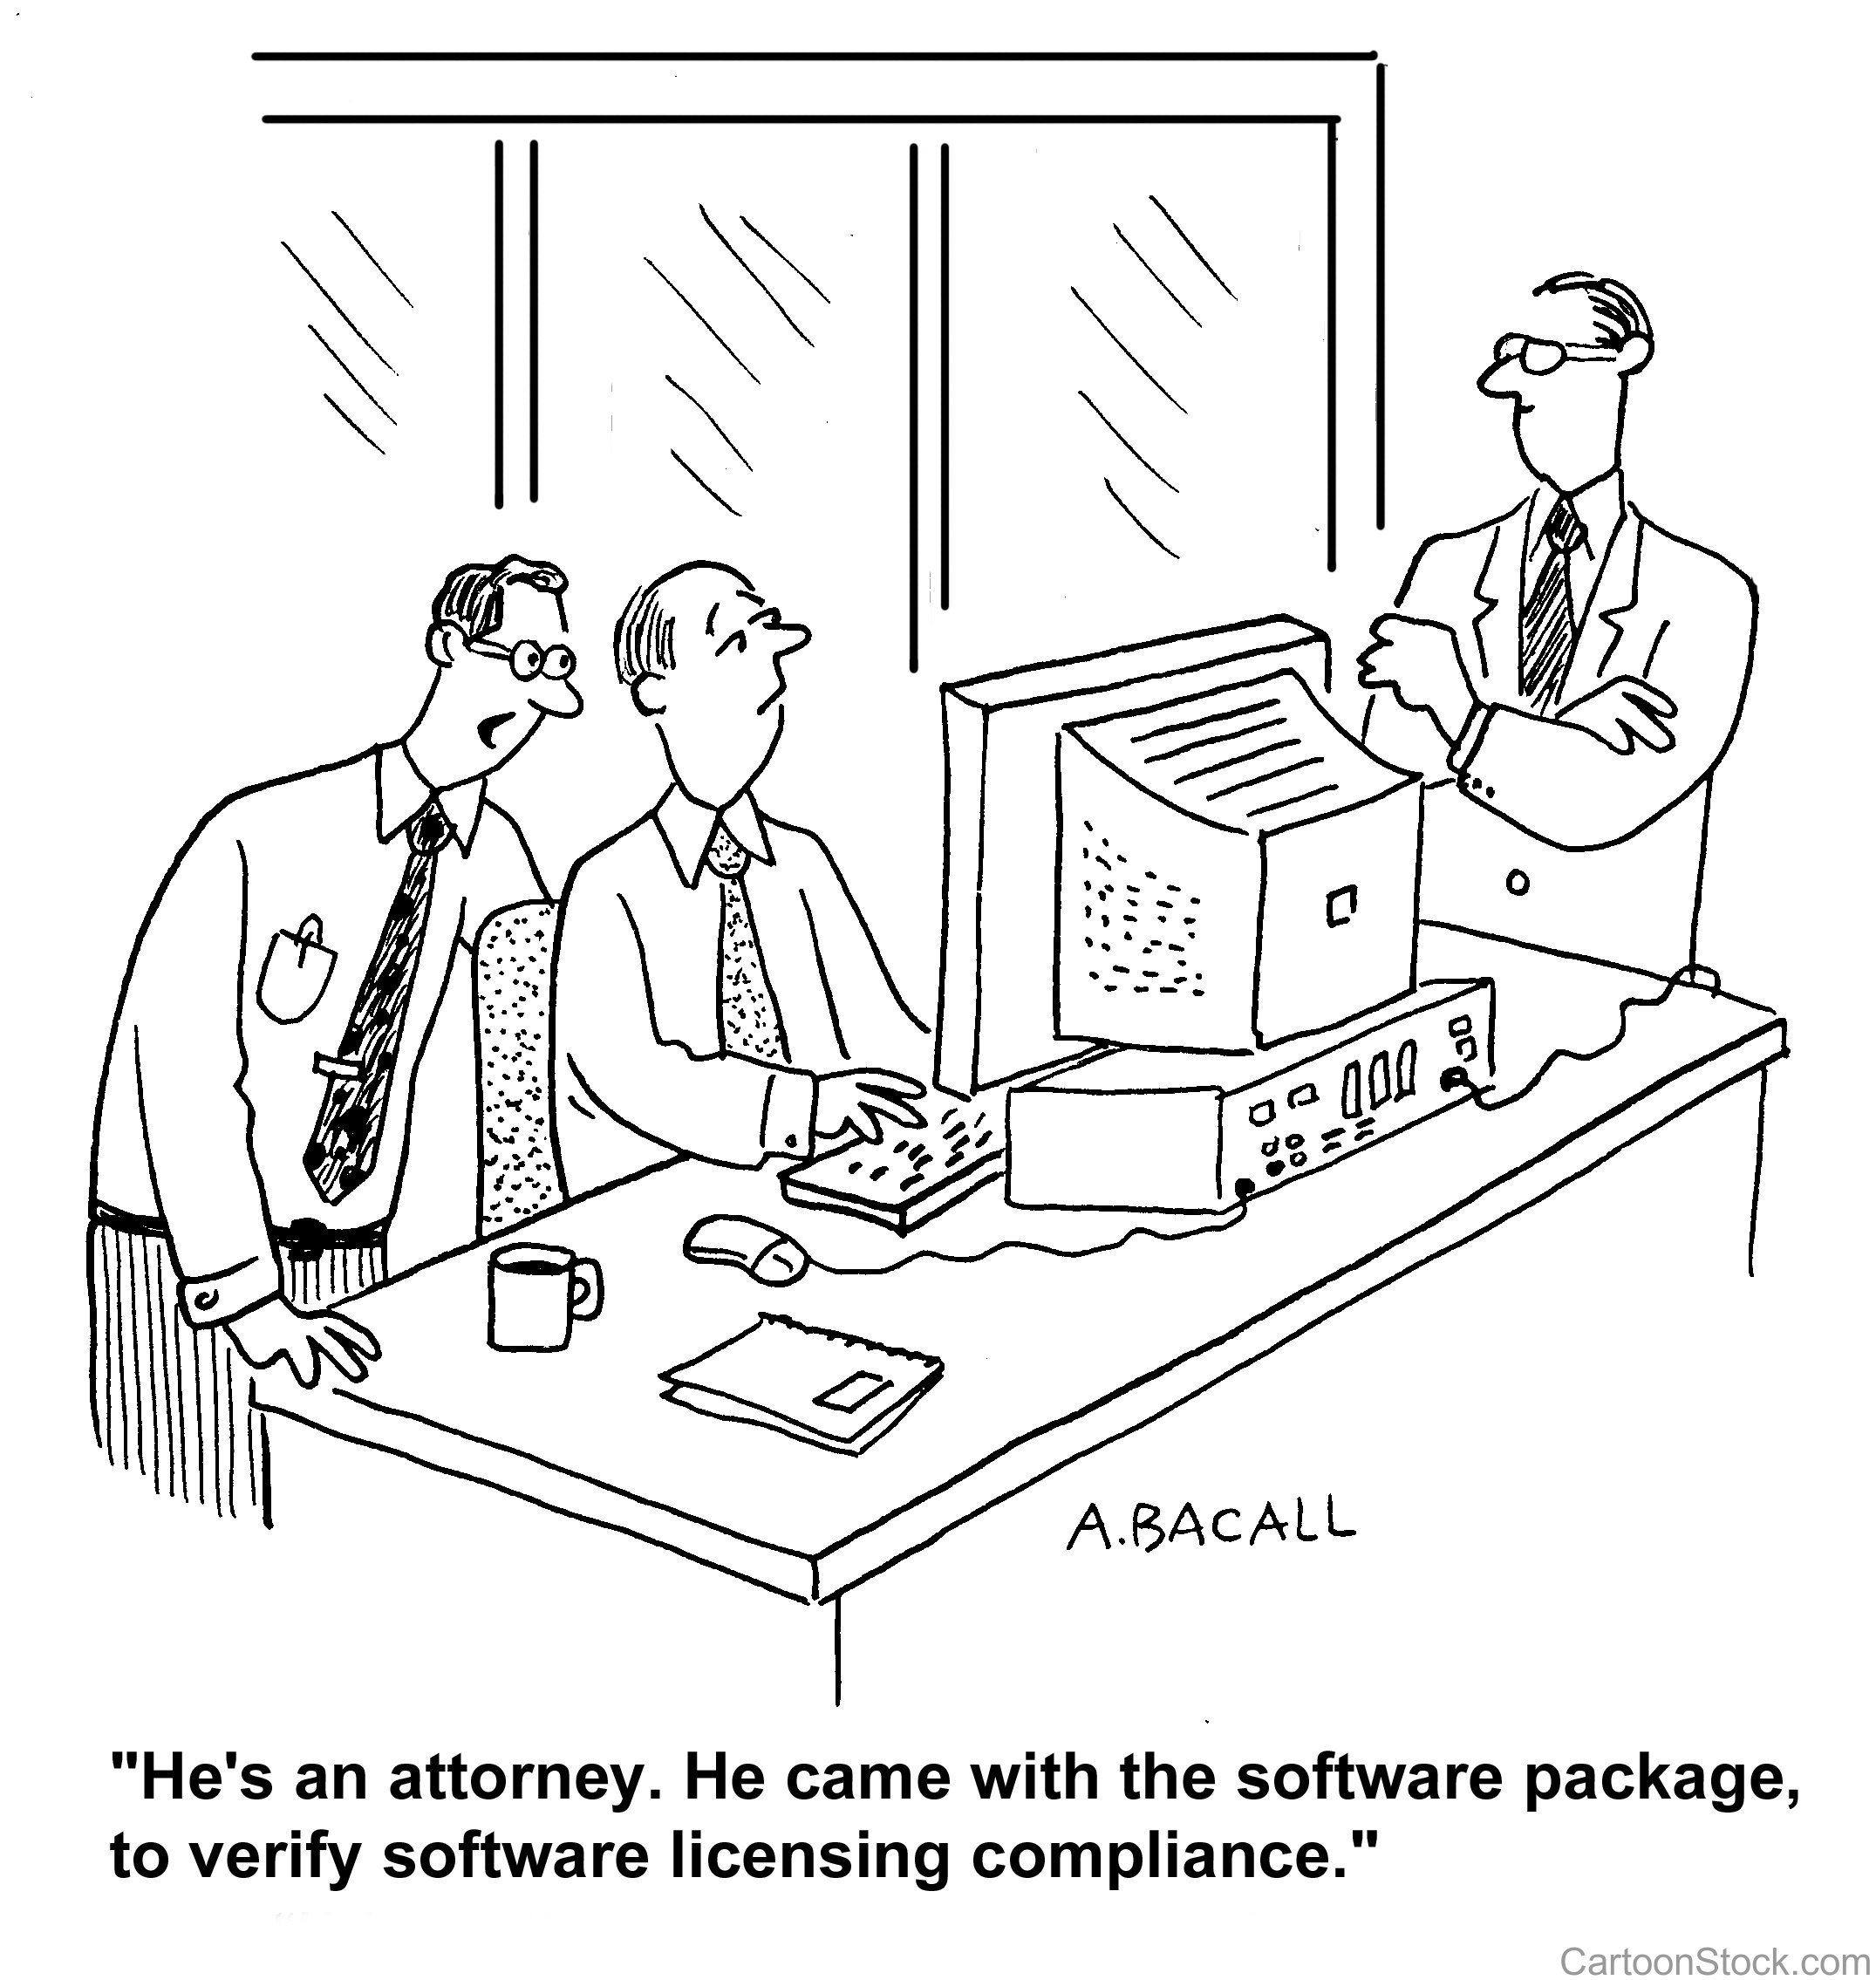 software-license-compliance-attorney